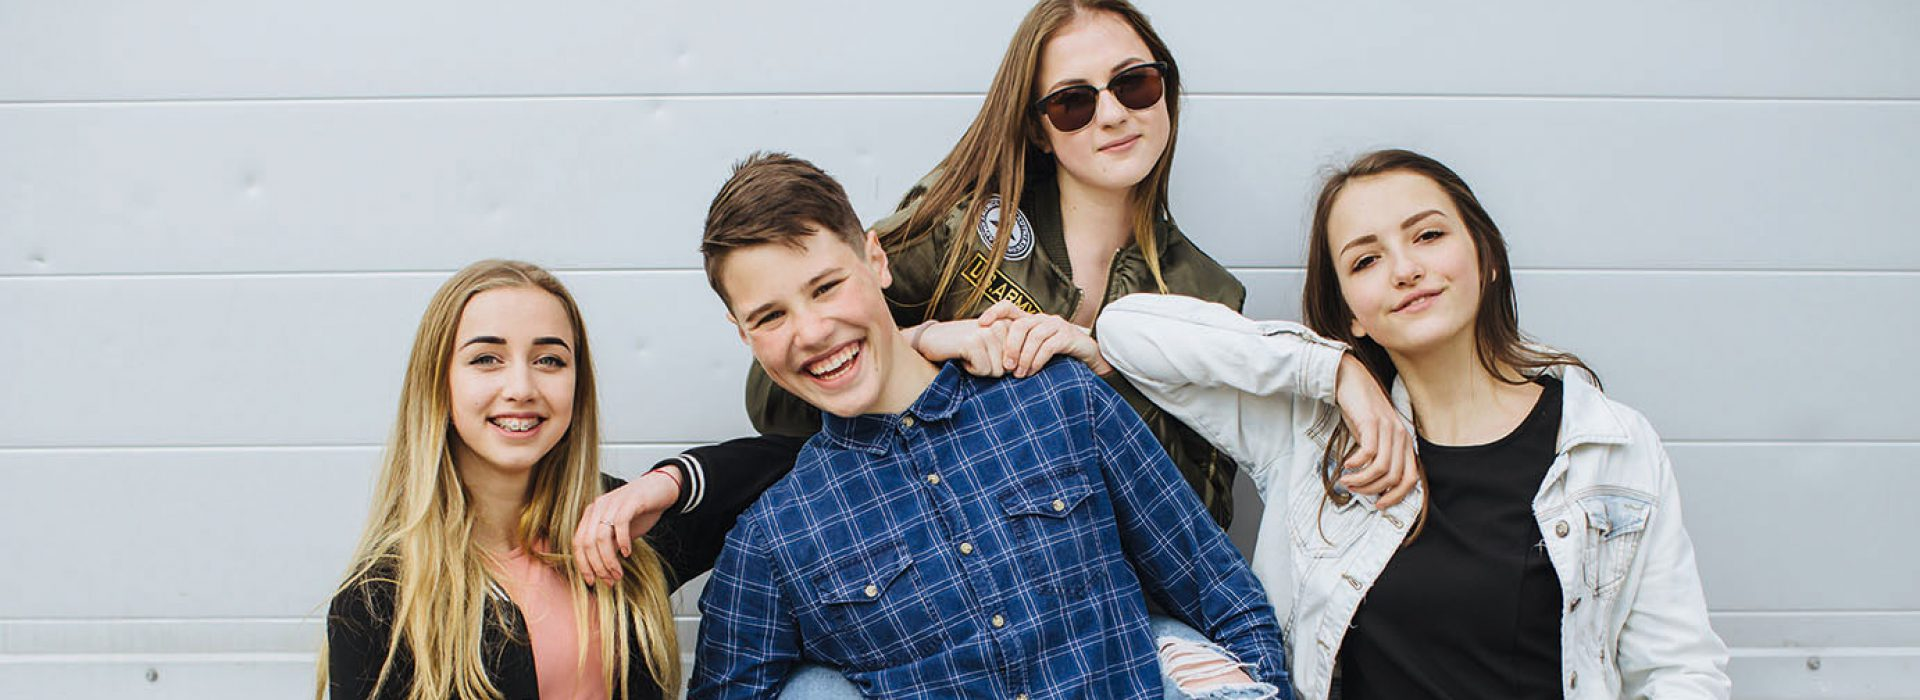 Summer holidays and teenage concept - group of smiling teenagers